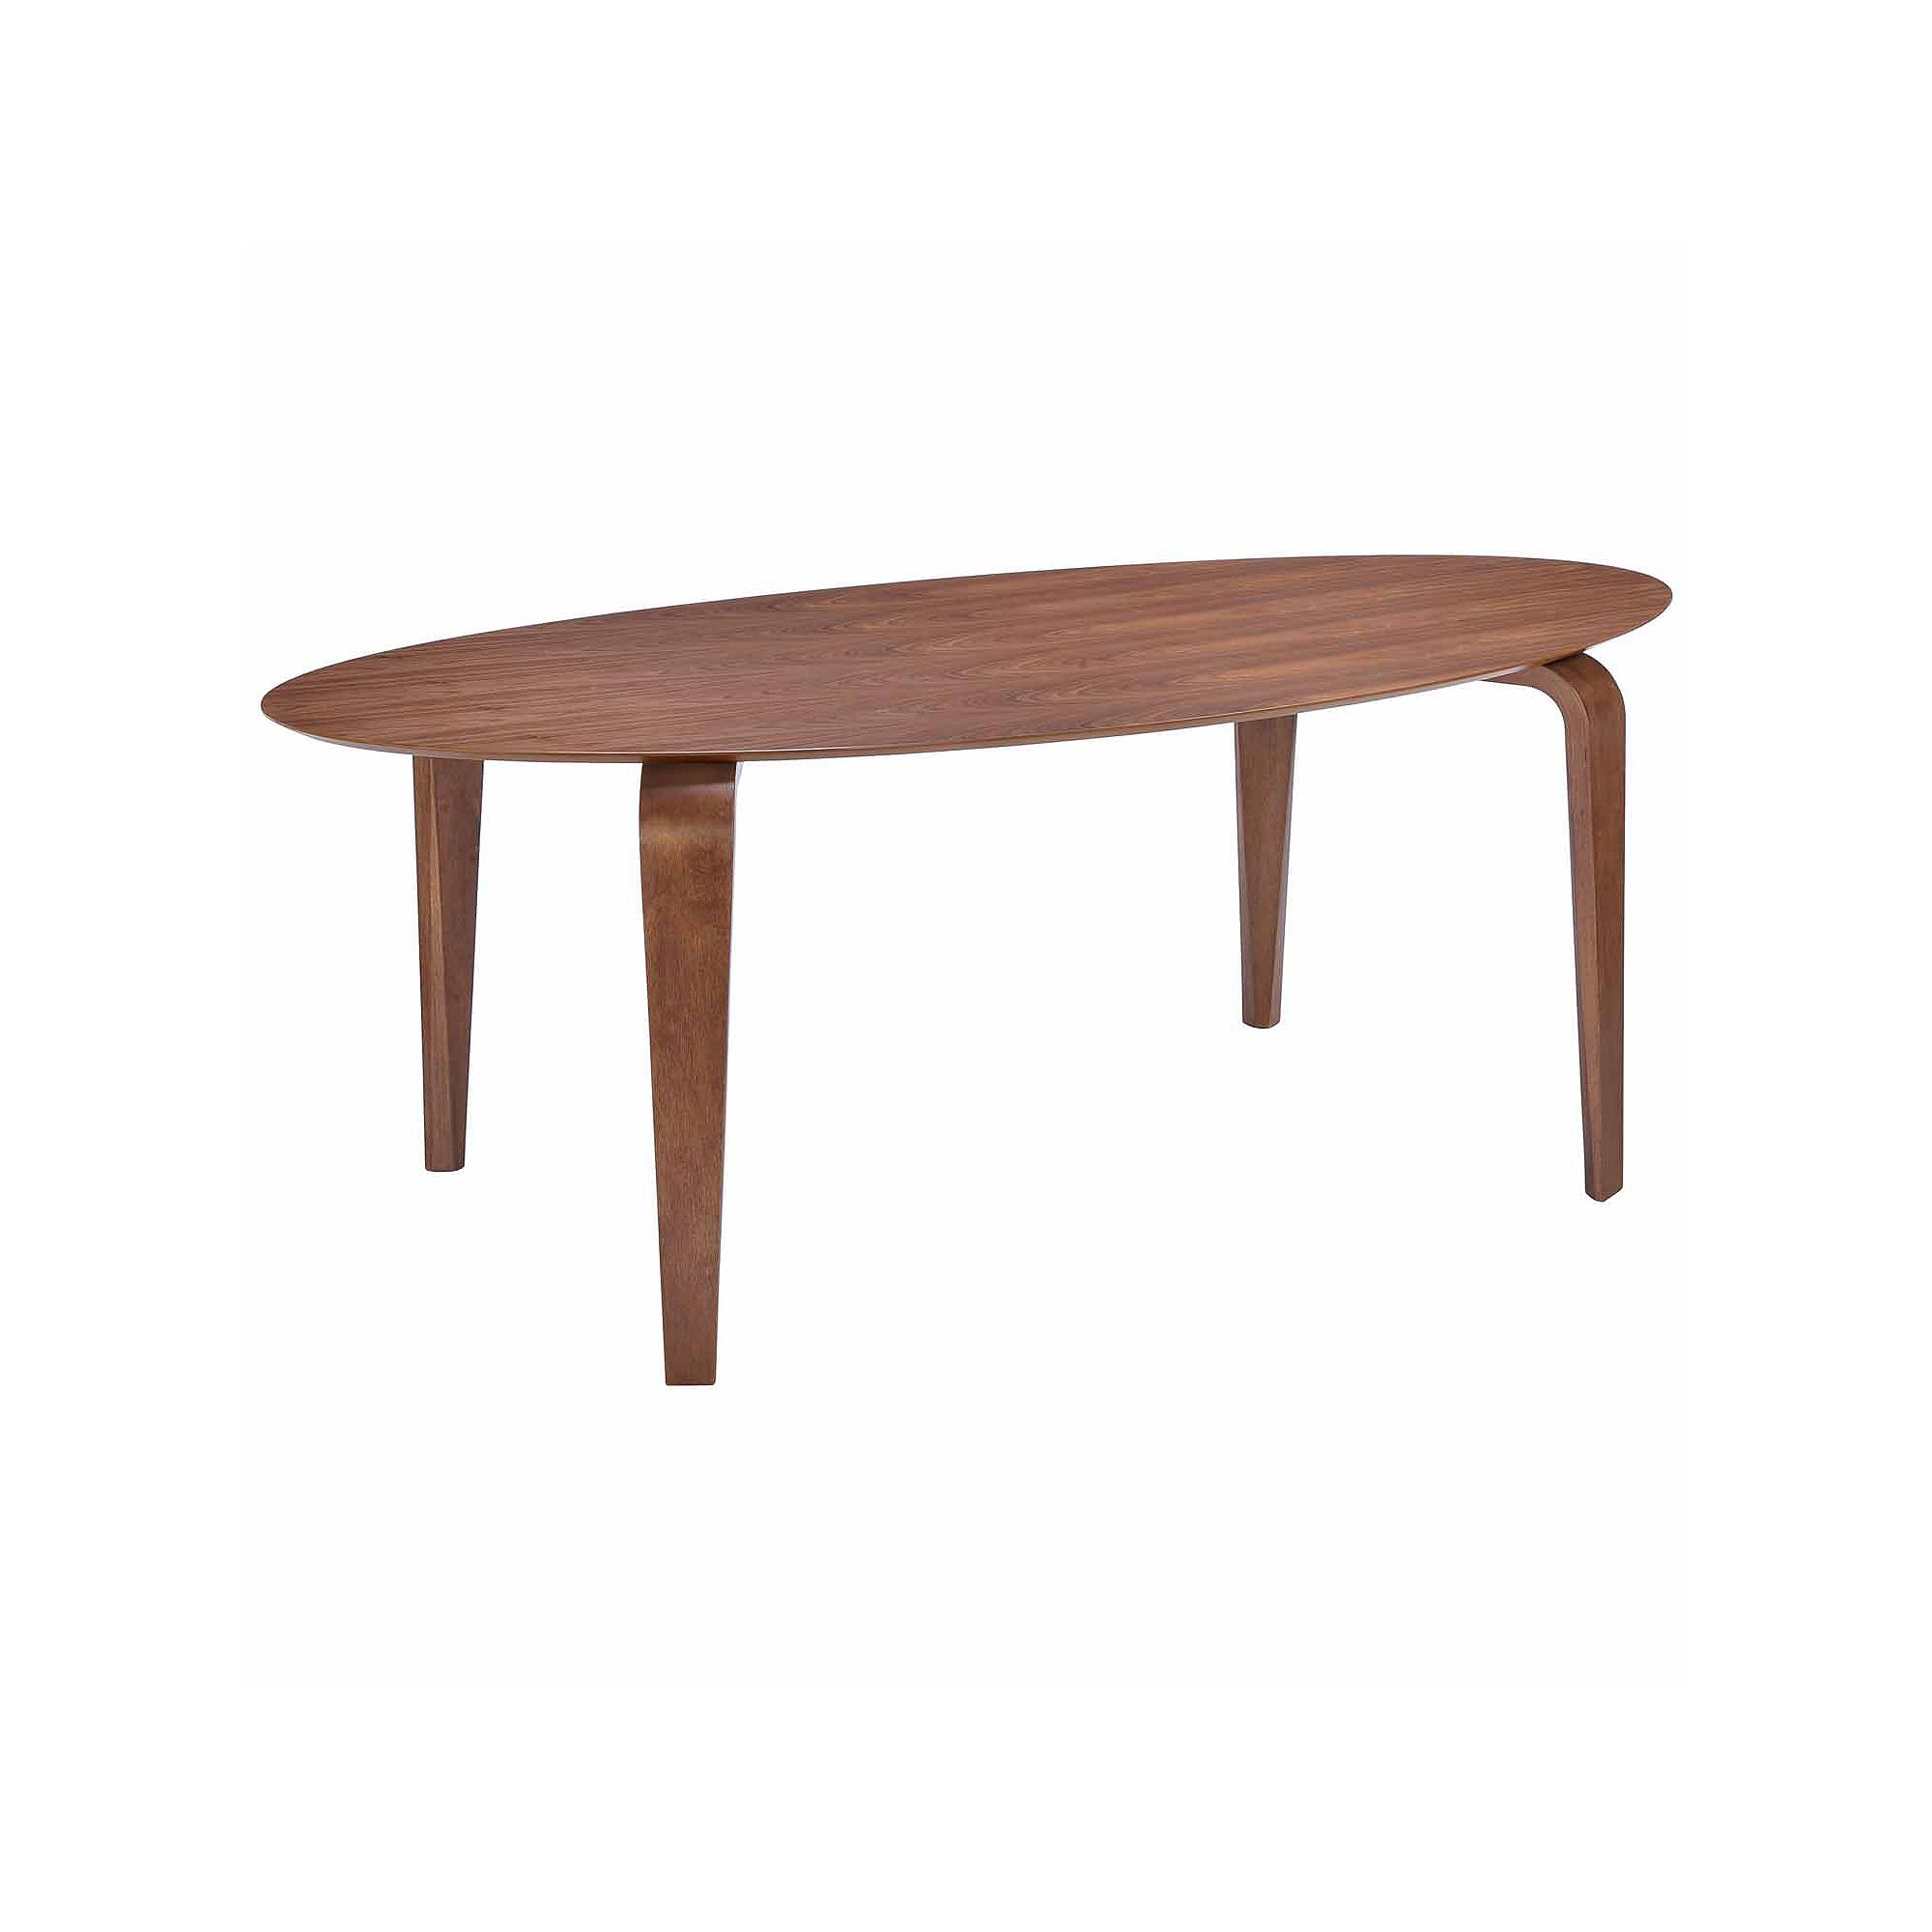 Zuo Modern Virginia Key Oval Dining Table